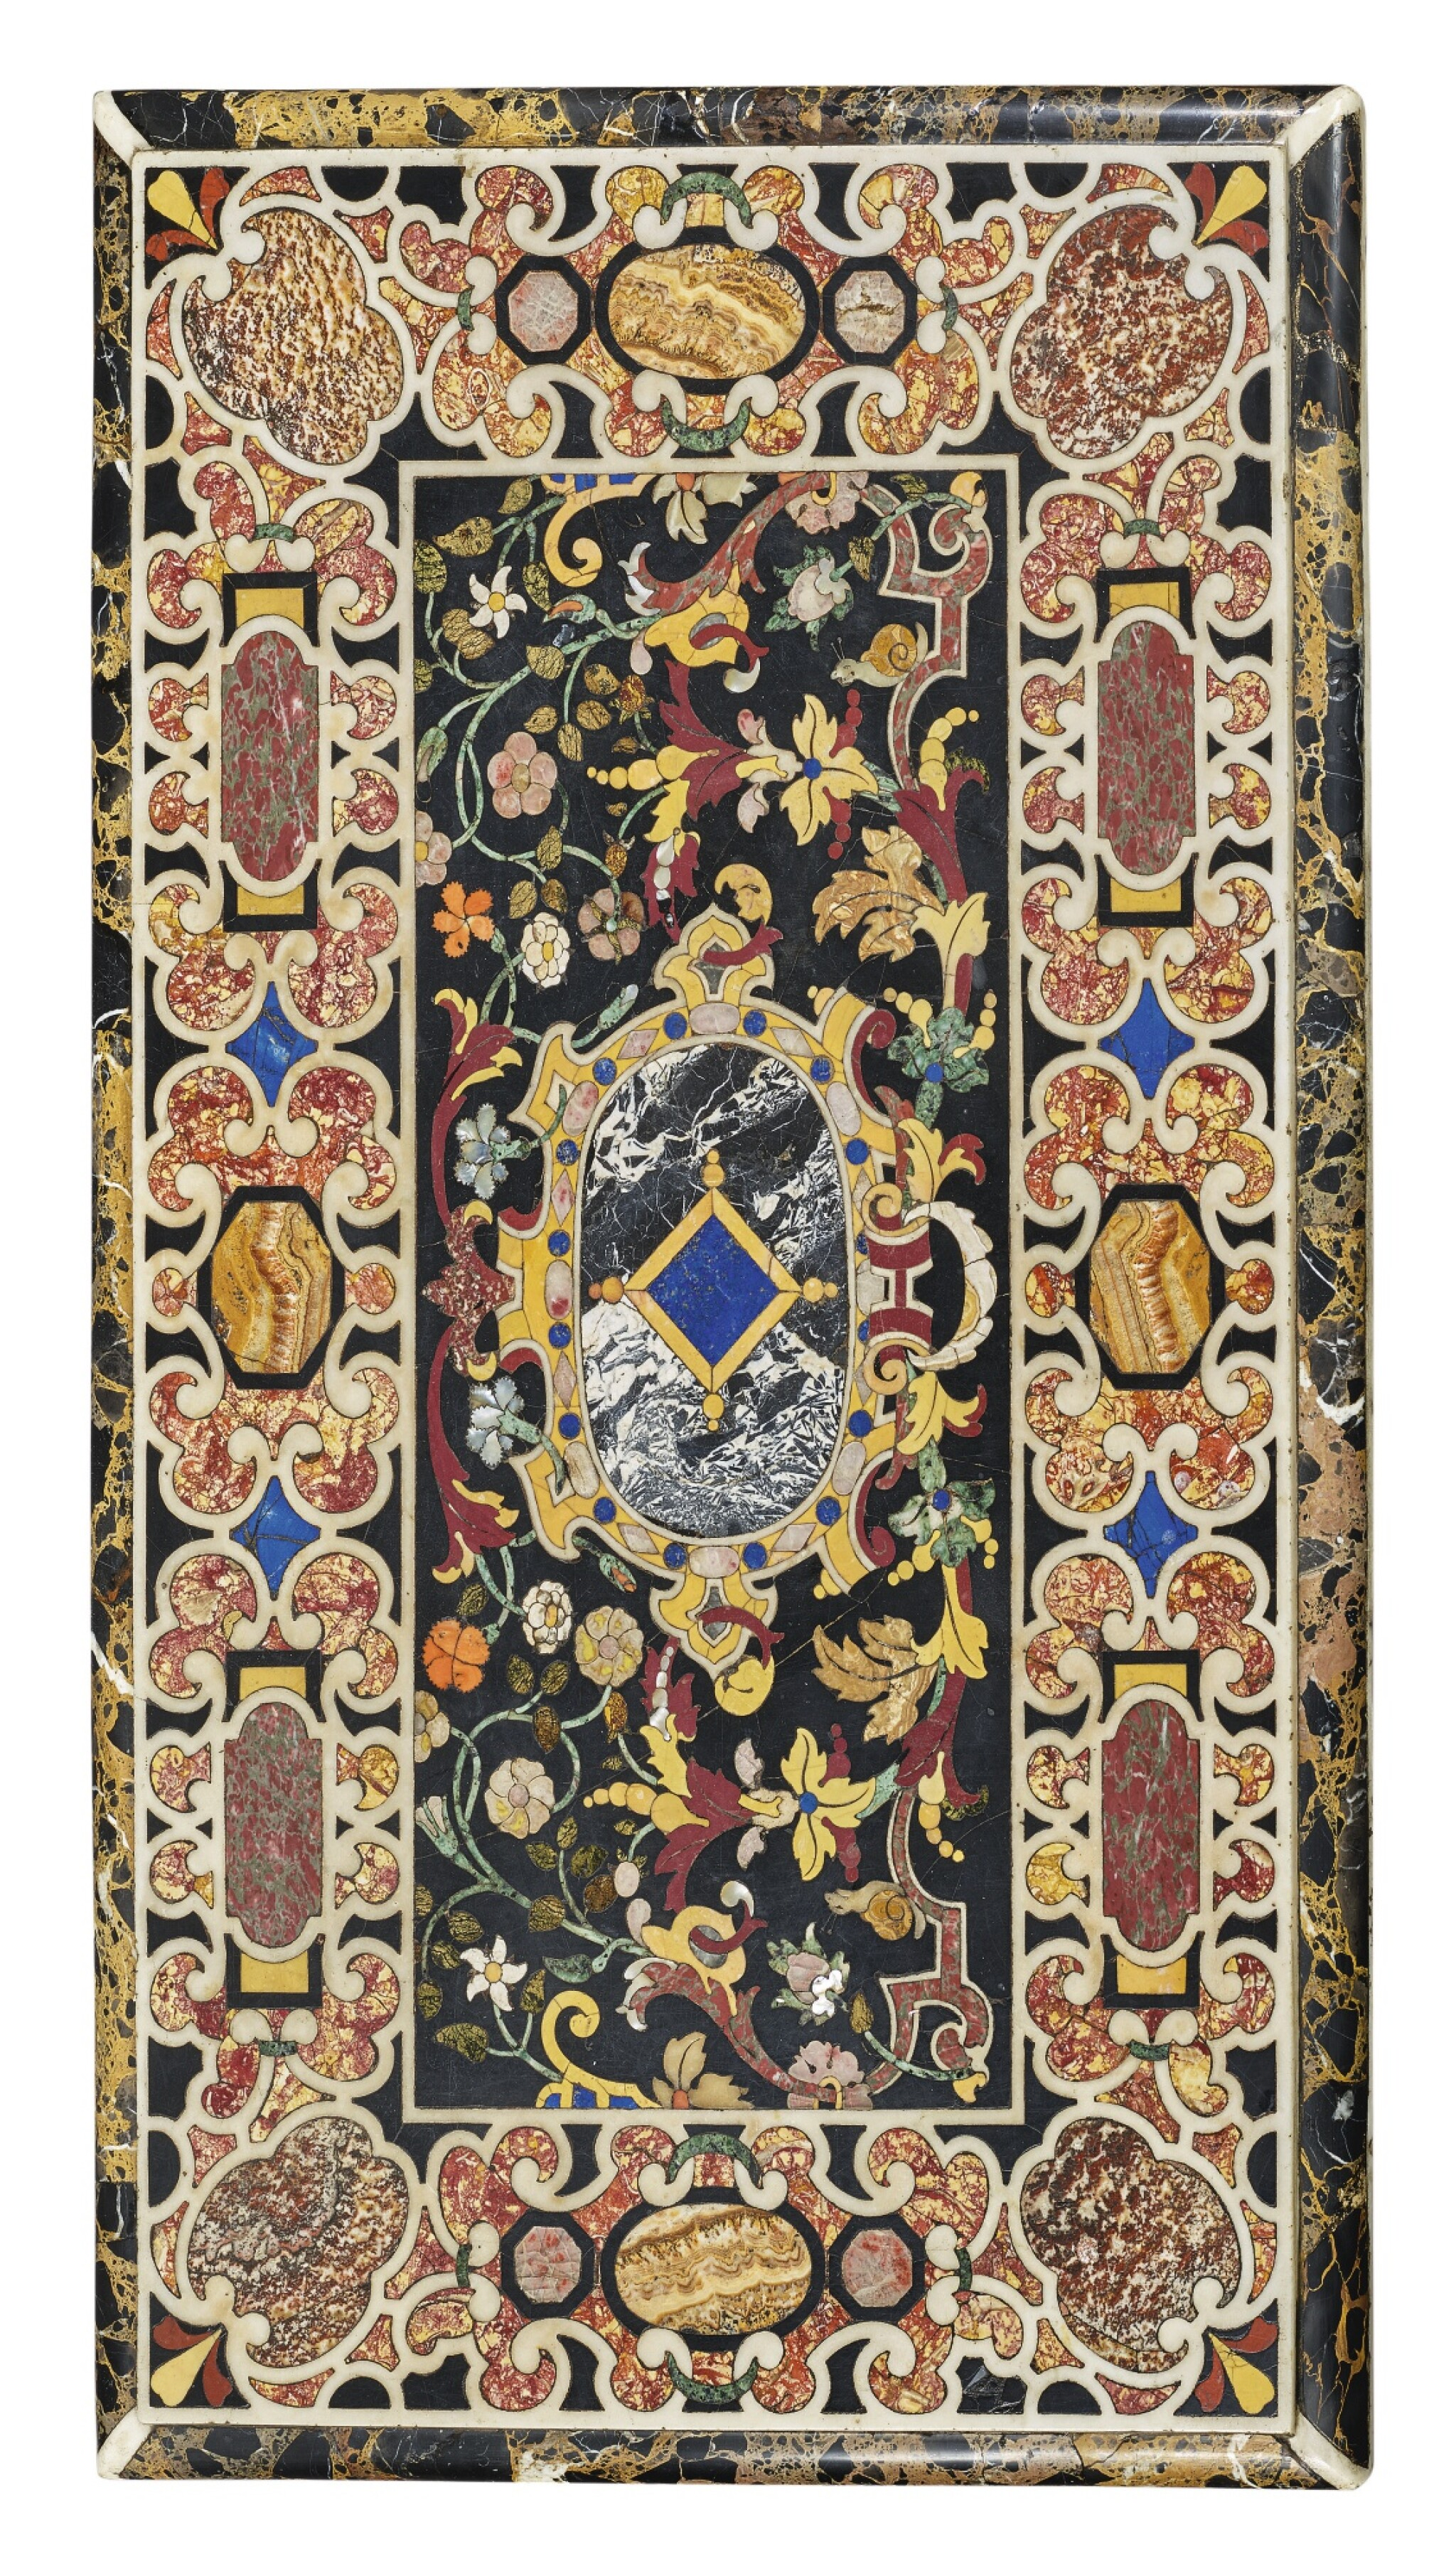 View full screen - View 1 of Lot 848. AN ITALIAN BAROQUE COMMESSO DI PIETRE DURE PANEL, ATTRIBUTED TO THE GRAND DUCAL WORKSHOPS, FLORENCE, EARLY 17TH CENTURY.